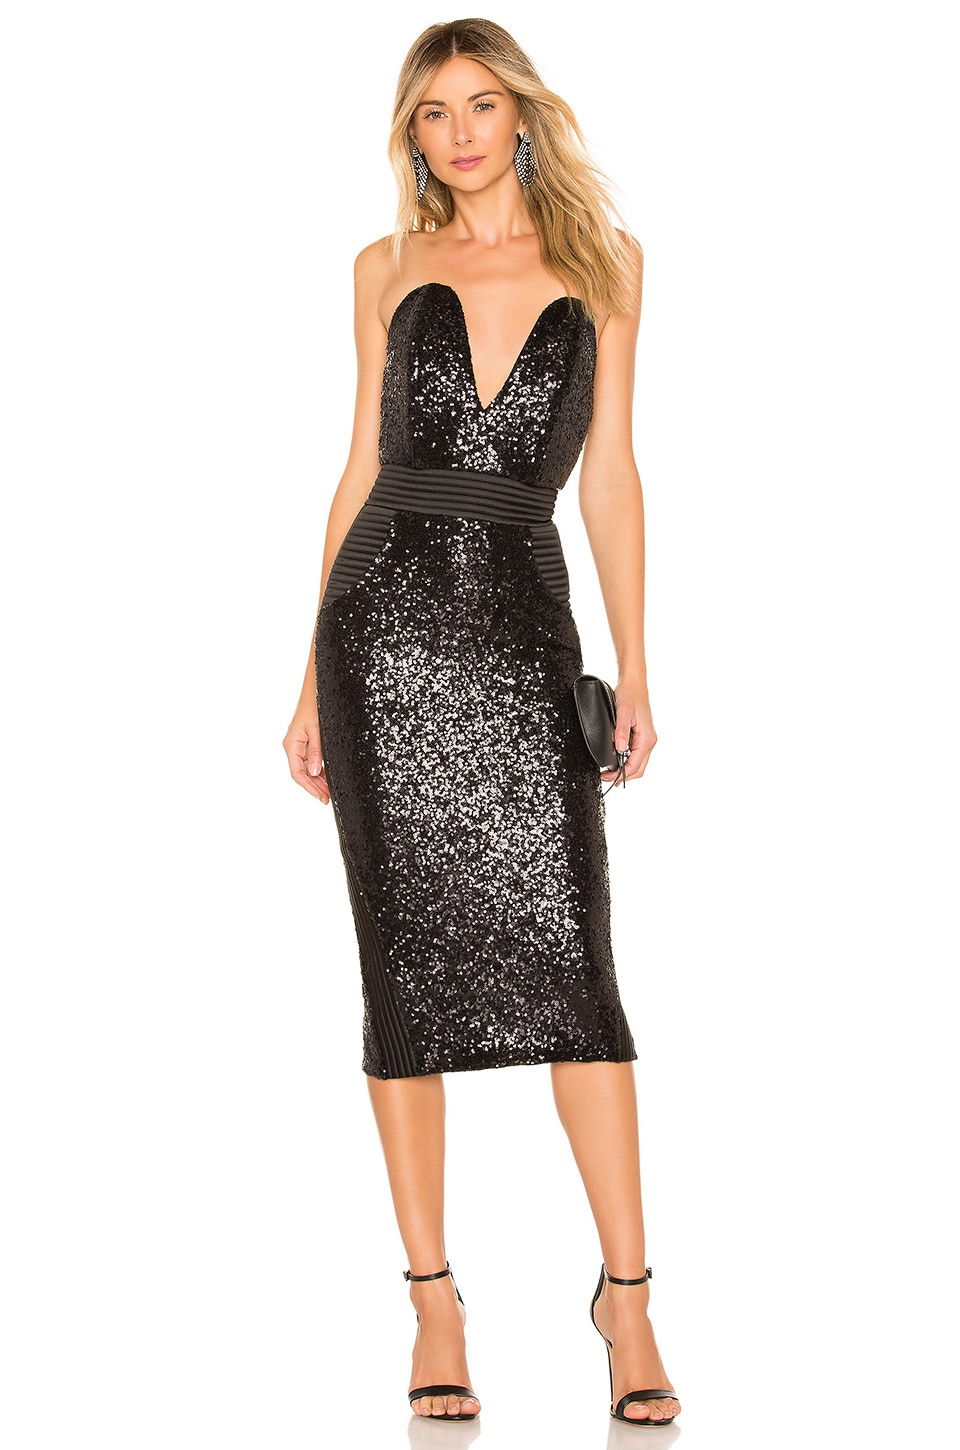 Zhivago Eat To The Beat Dress in Black